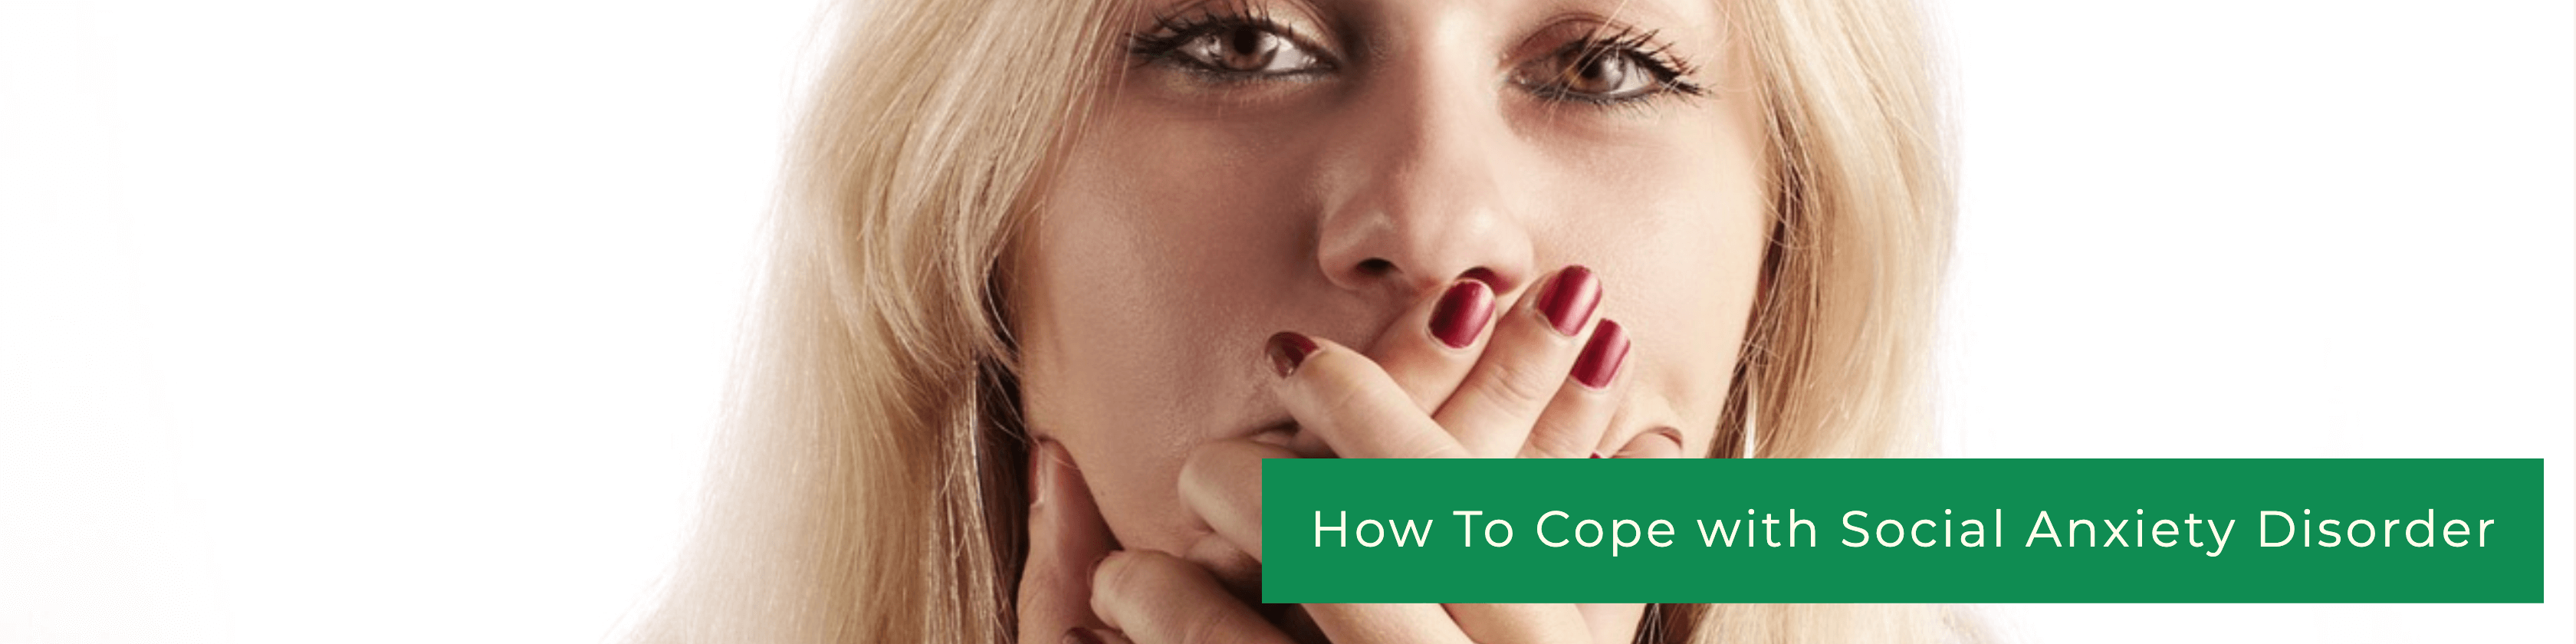 Copying with Social Anxiety